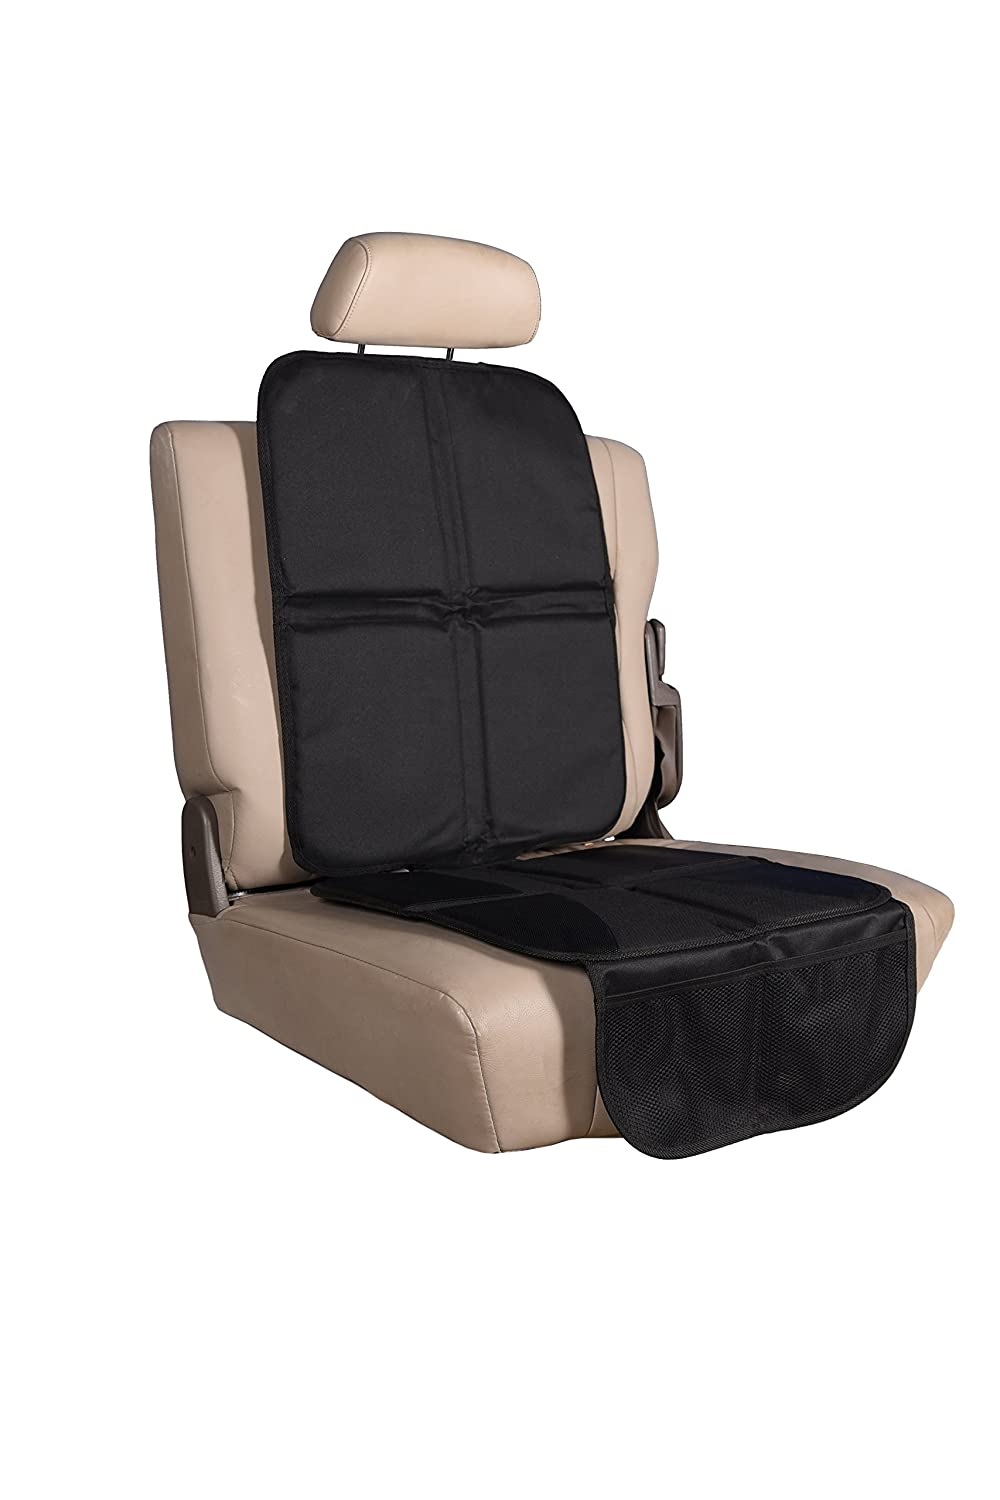 K4 Dynamics Child and Pet Car Seat Protector - Thick 600D Oxford Fabric - Catch Crumbs, Hair, and Messes - Non Slip and Extra Padded for Comfort - Adjustable - Waterproof